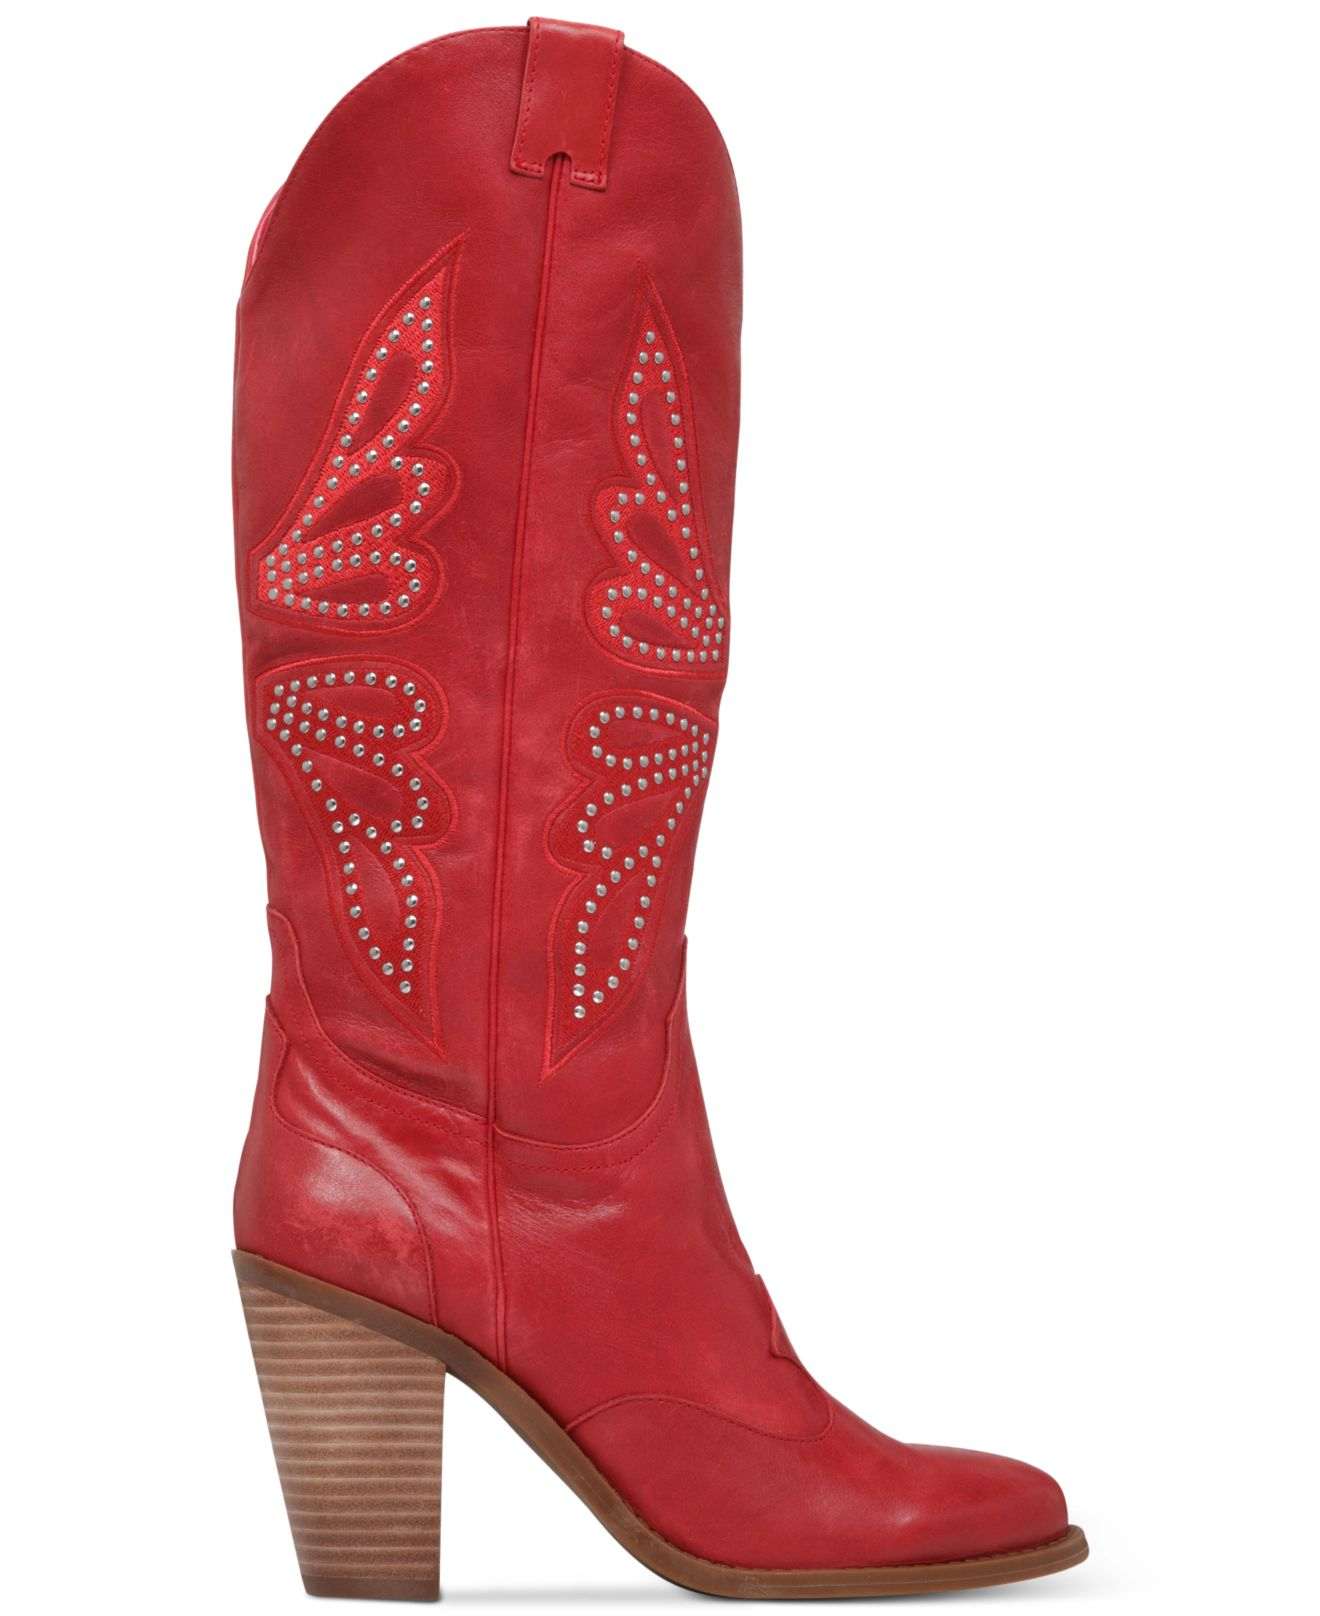 1d9e91e4fe8 Jessica Simpson Red Caralee Western Boots